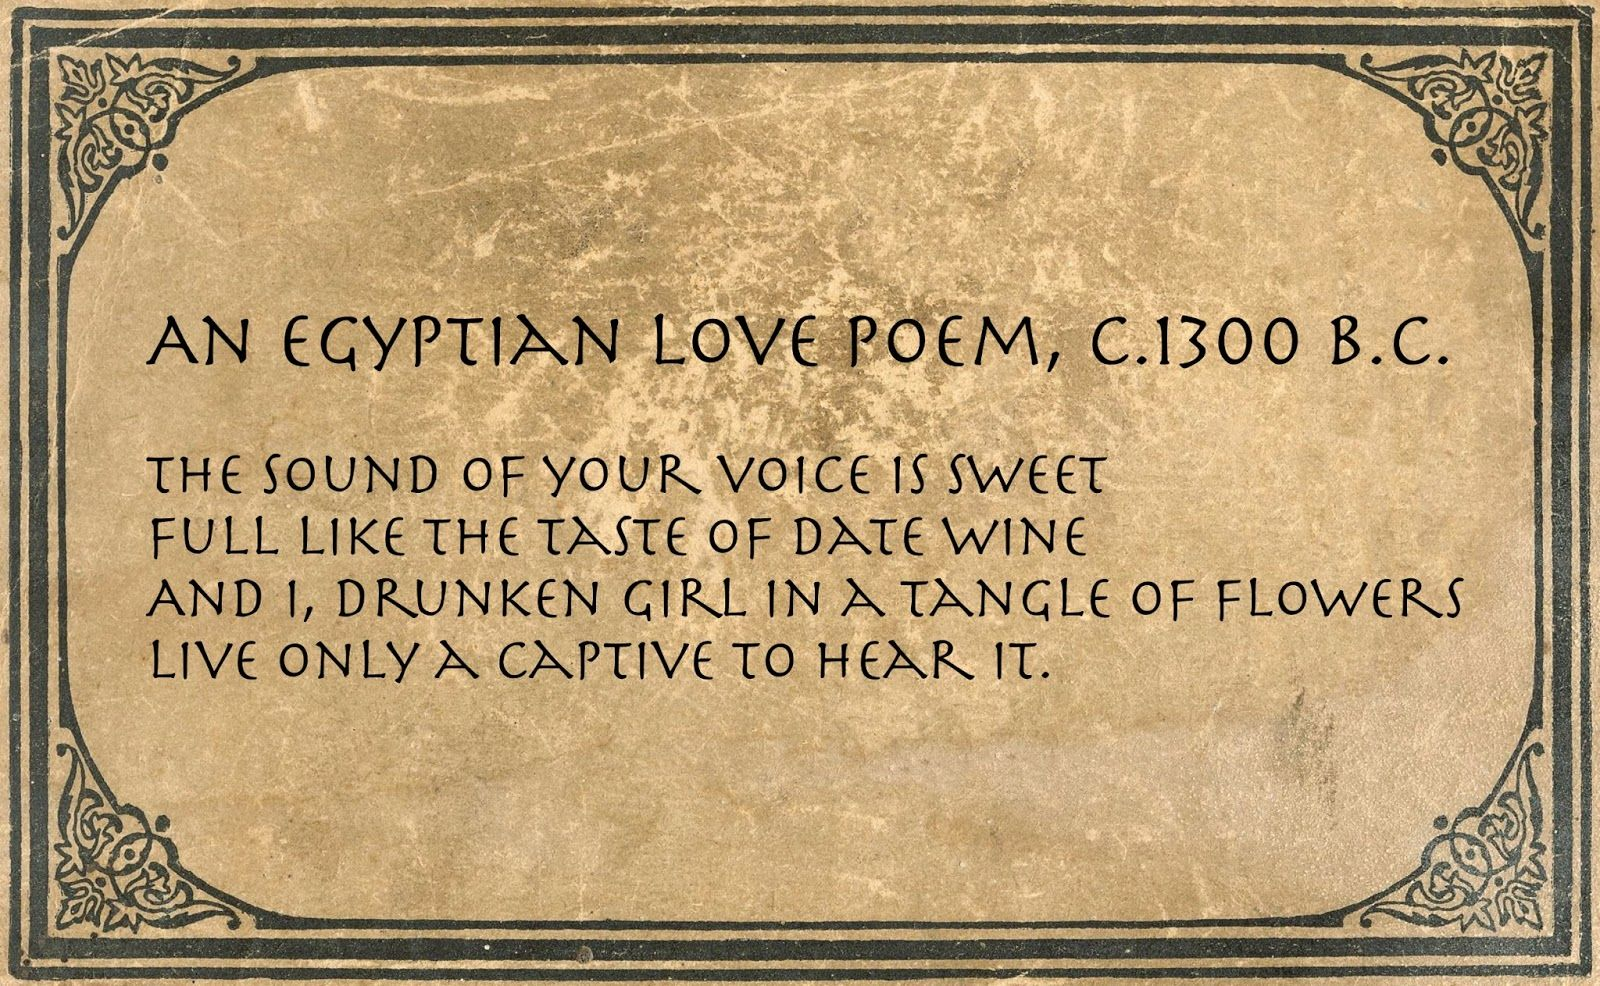 Poems Quotes And Prose An Egyptian Love Poem C1300 Bc Neat